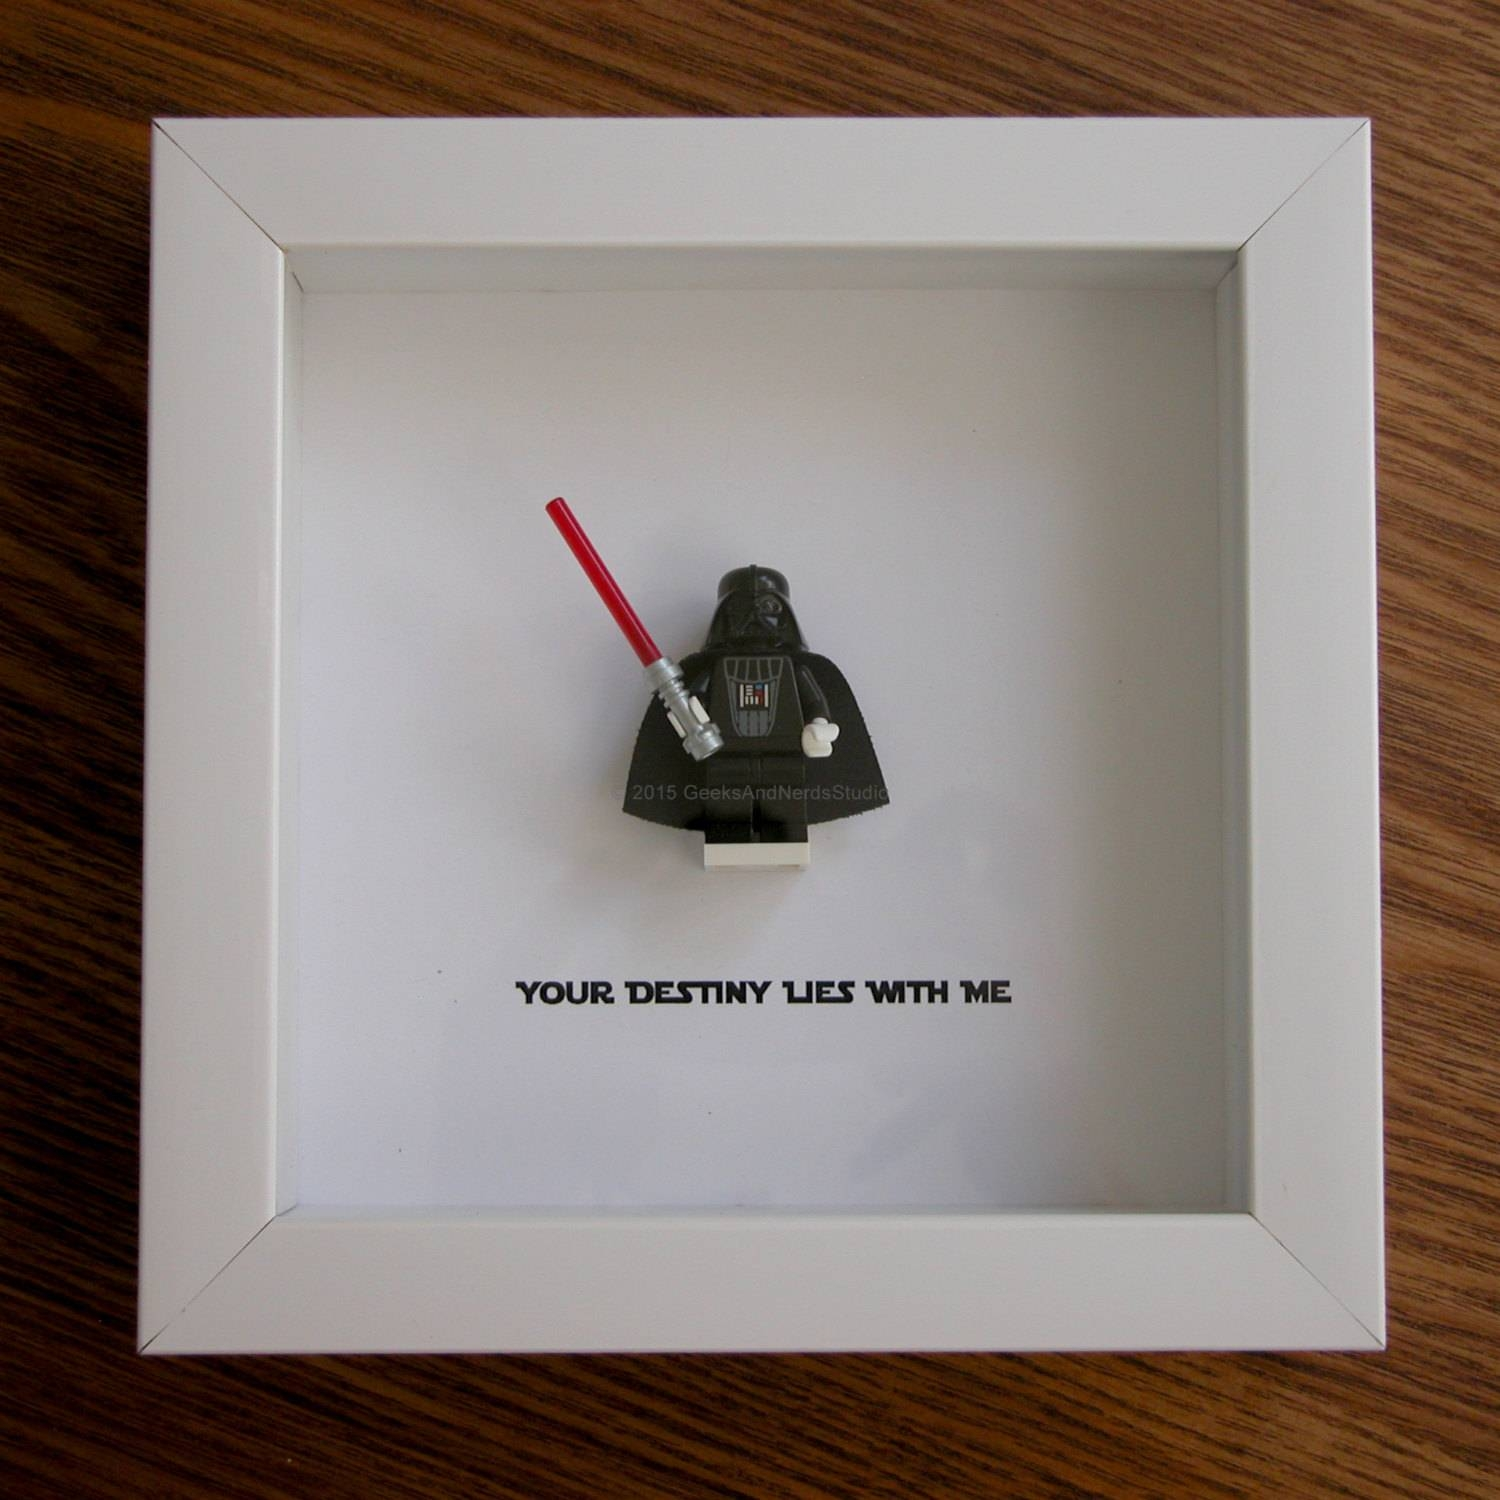 Lego Star Wars Art Frame Darth Vader Lego Christmas Lego Throughout Most Current Lego Star Wars Wall Art (View 13 of 20)